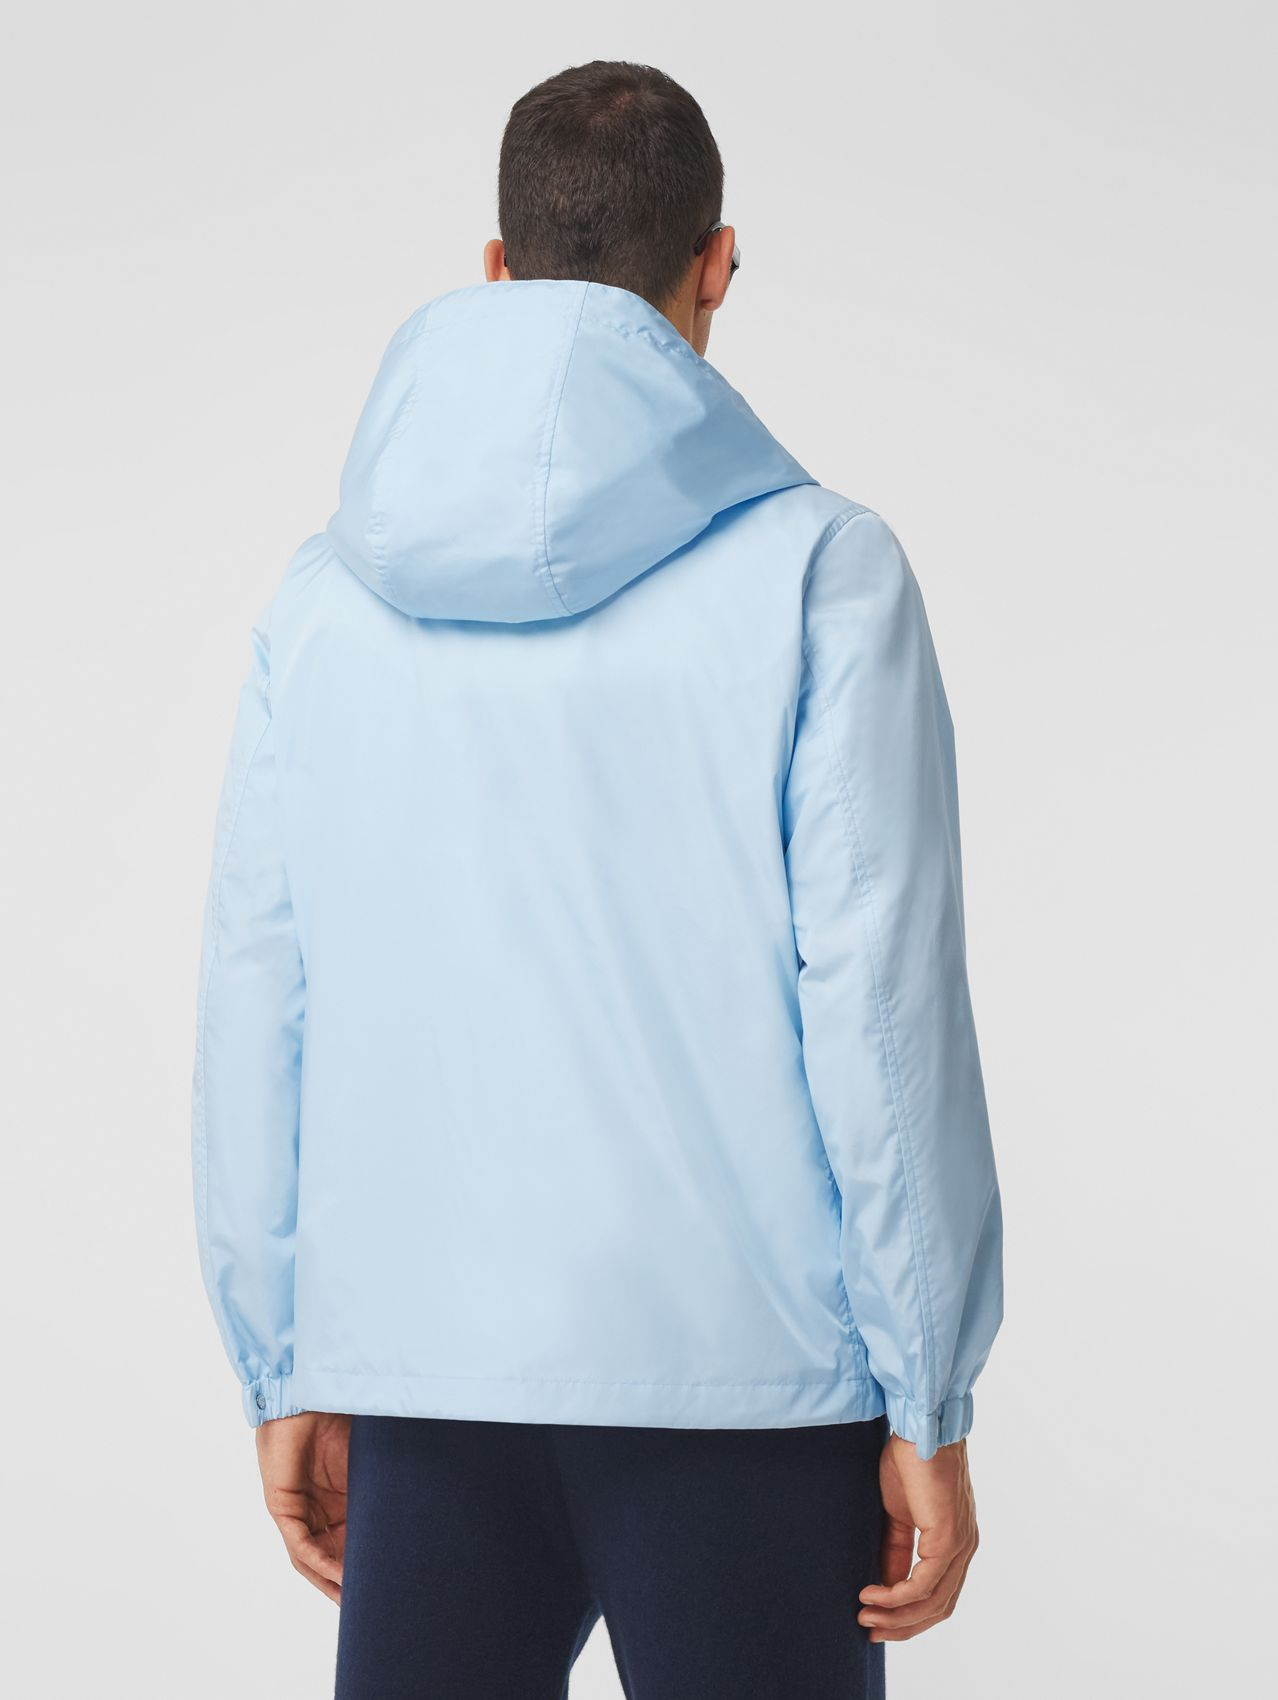 Montage Print ECONYL® Hooded Jacket in Pale Blue